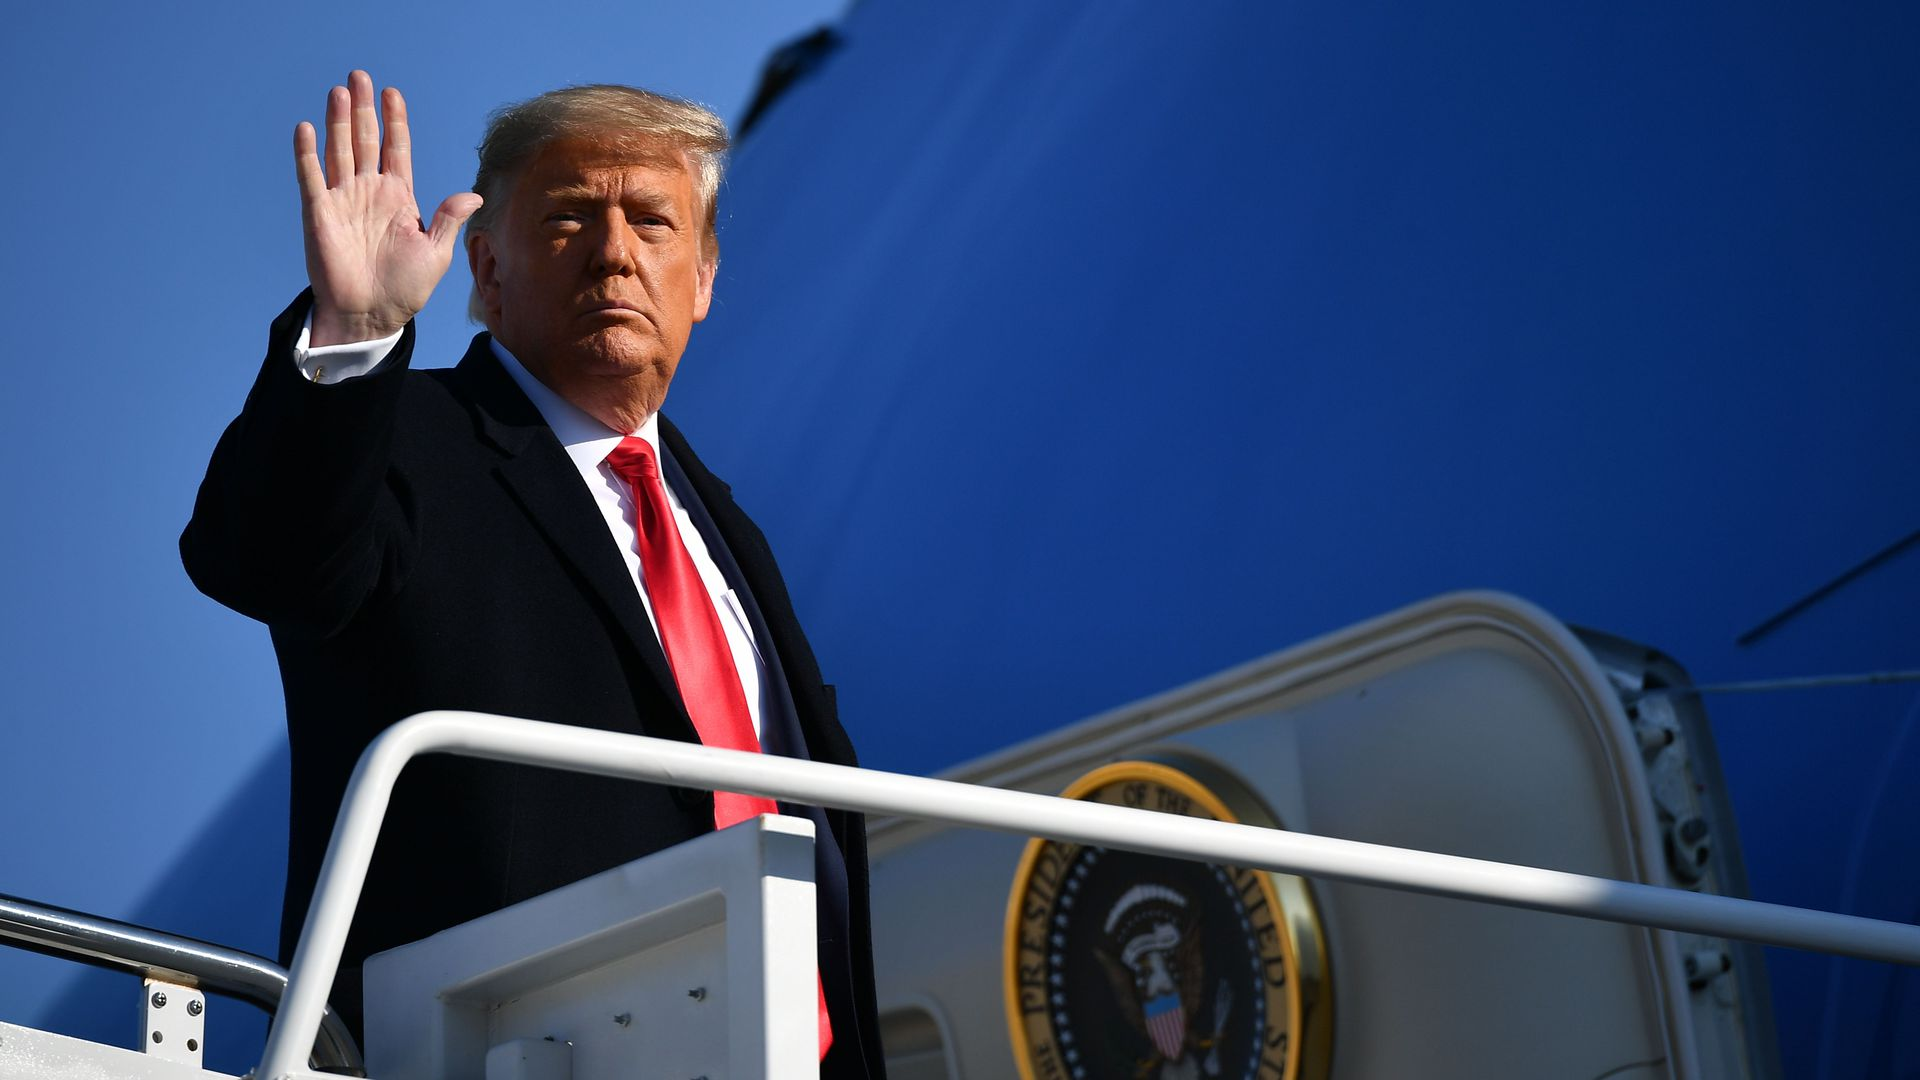 """Trump gives farewell address: """"We did what we came here to do"""" - Axios"""